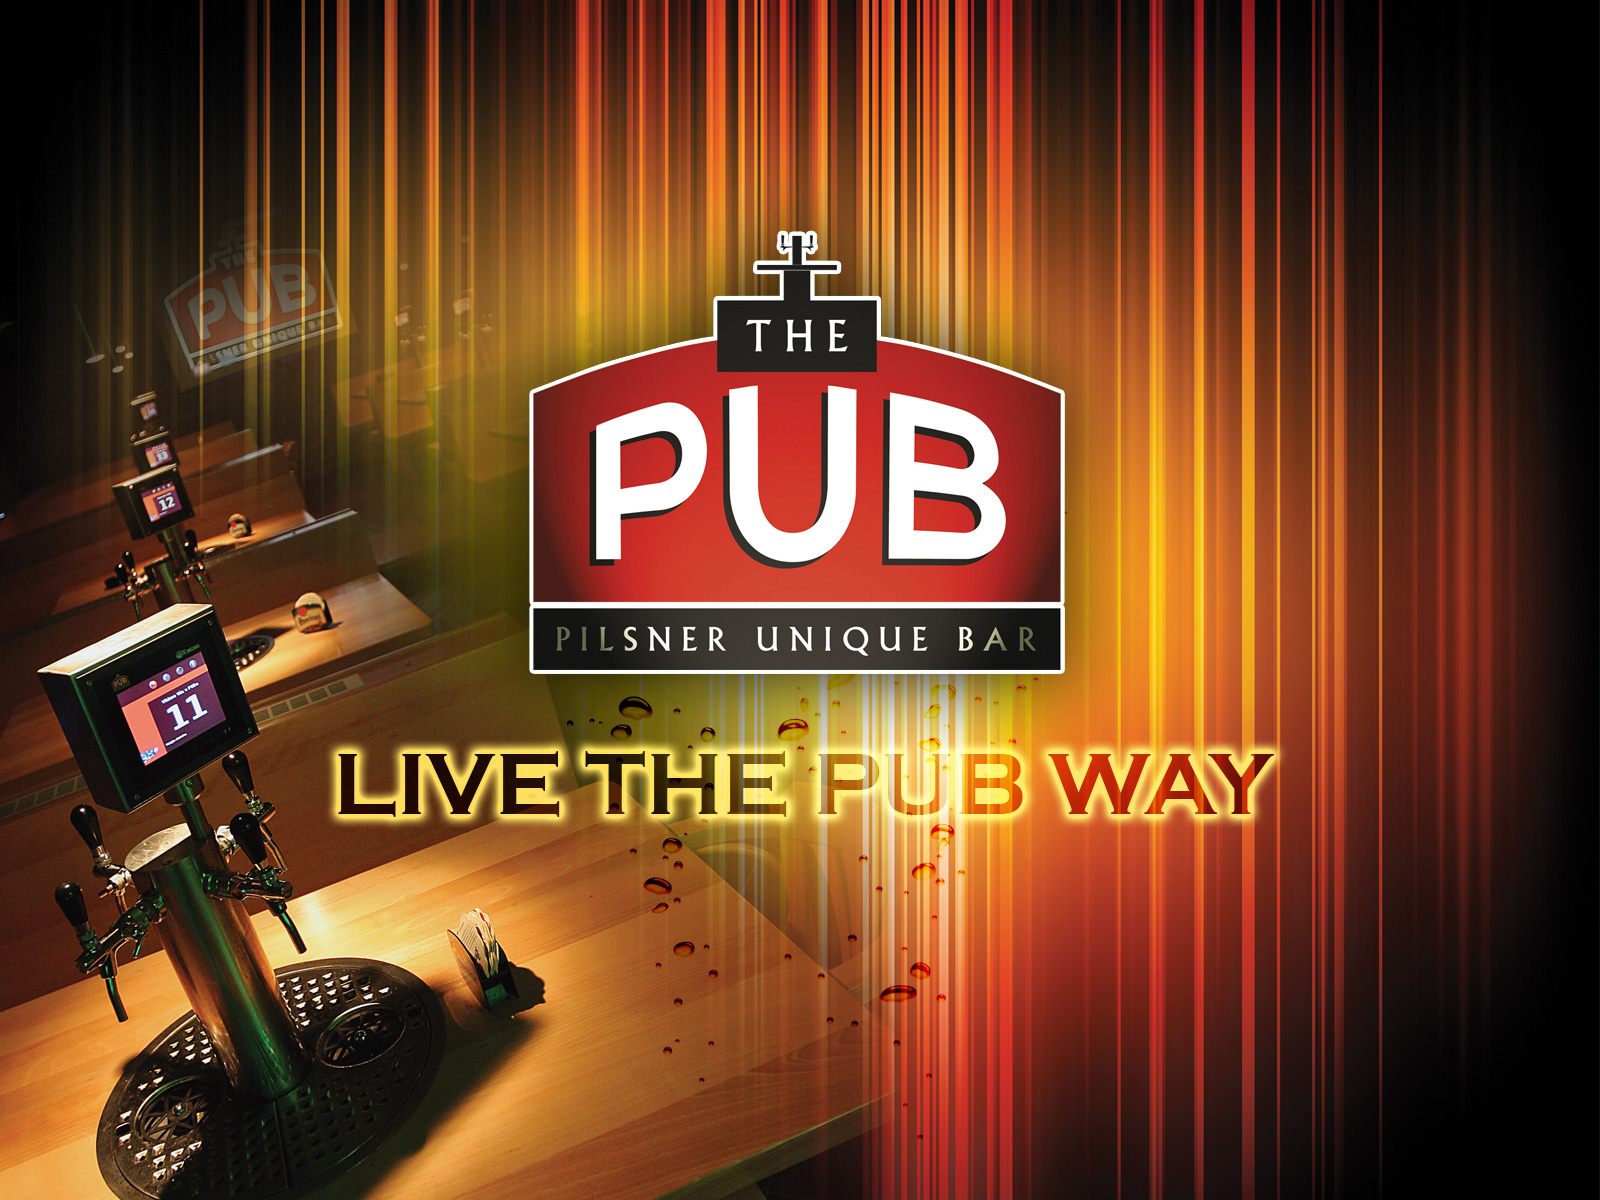 in eps logo the pub adobe photoshop bw logo the pub in pdf wallpapers 1600x1200